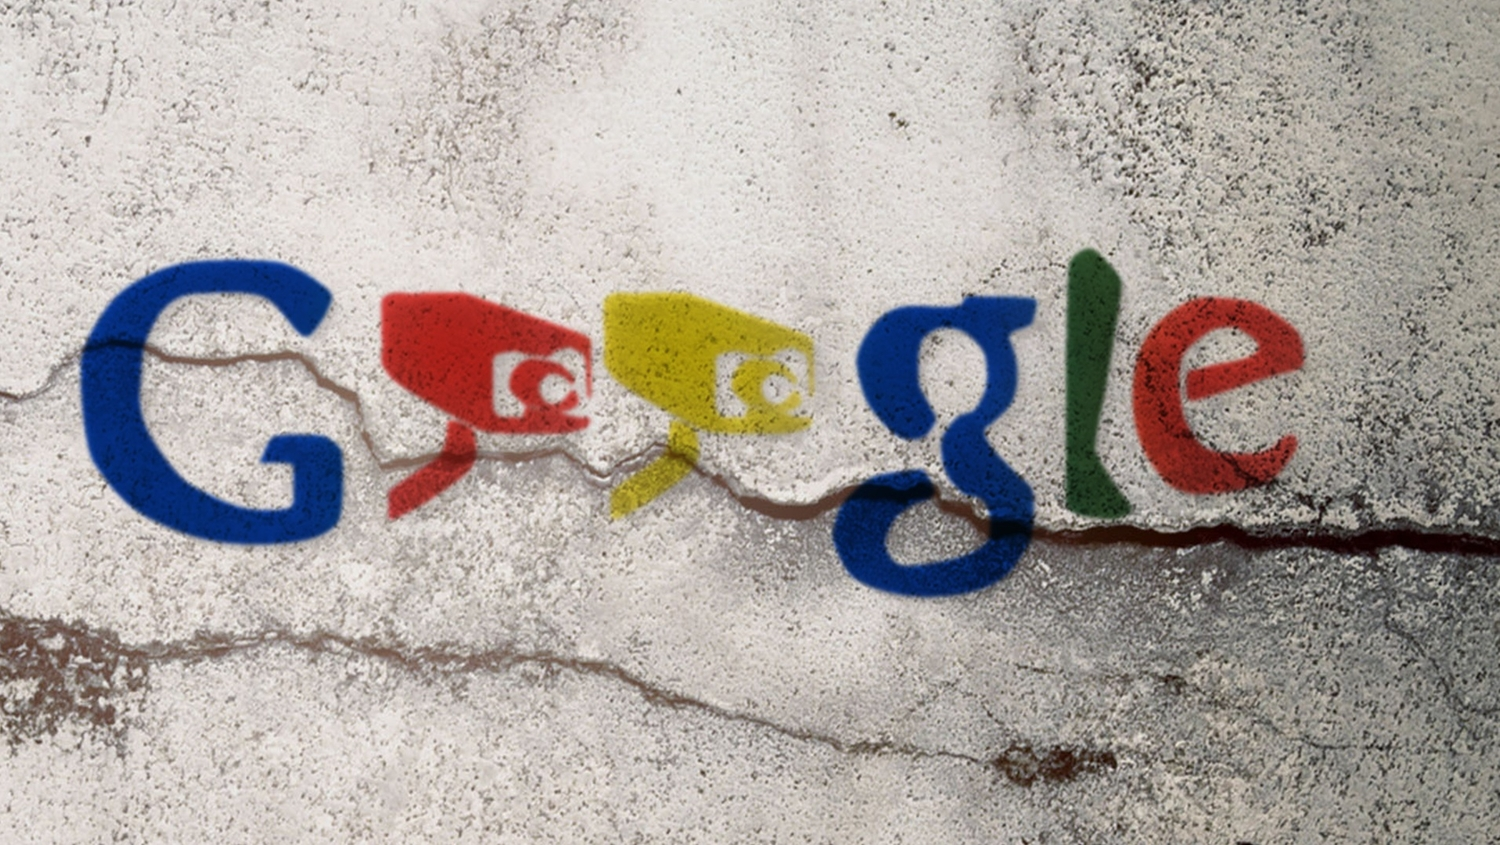 The Devolution Of The Google Logo